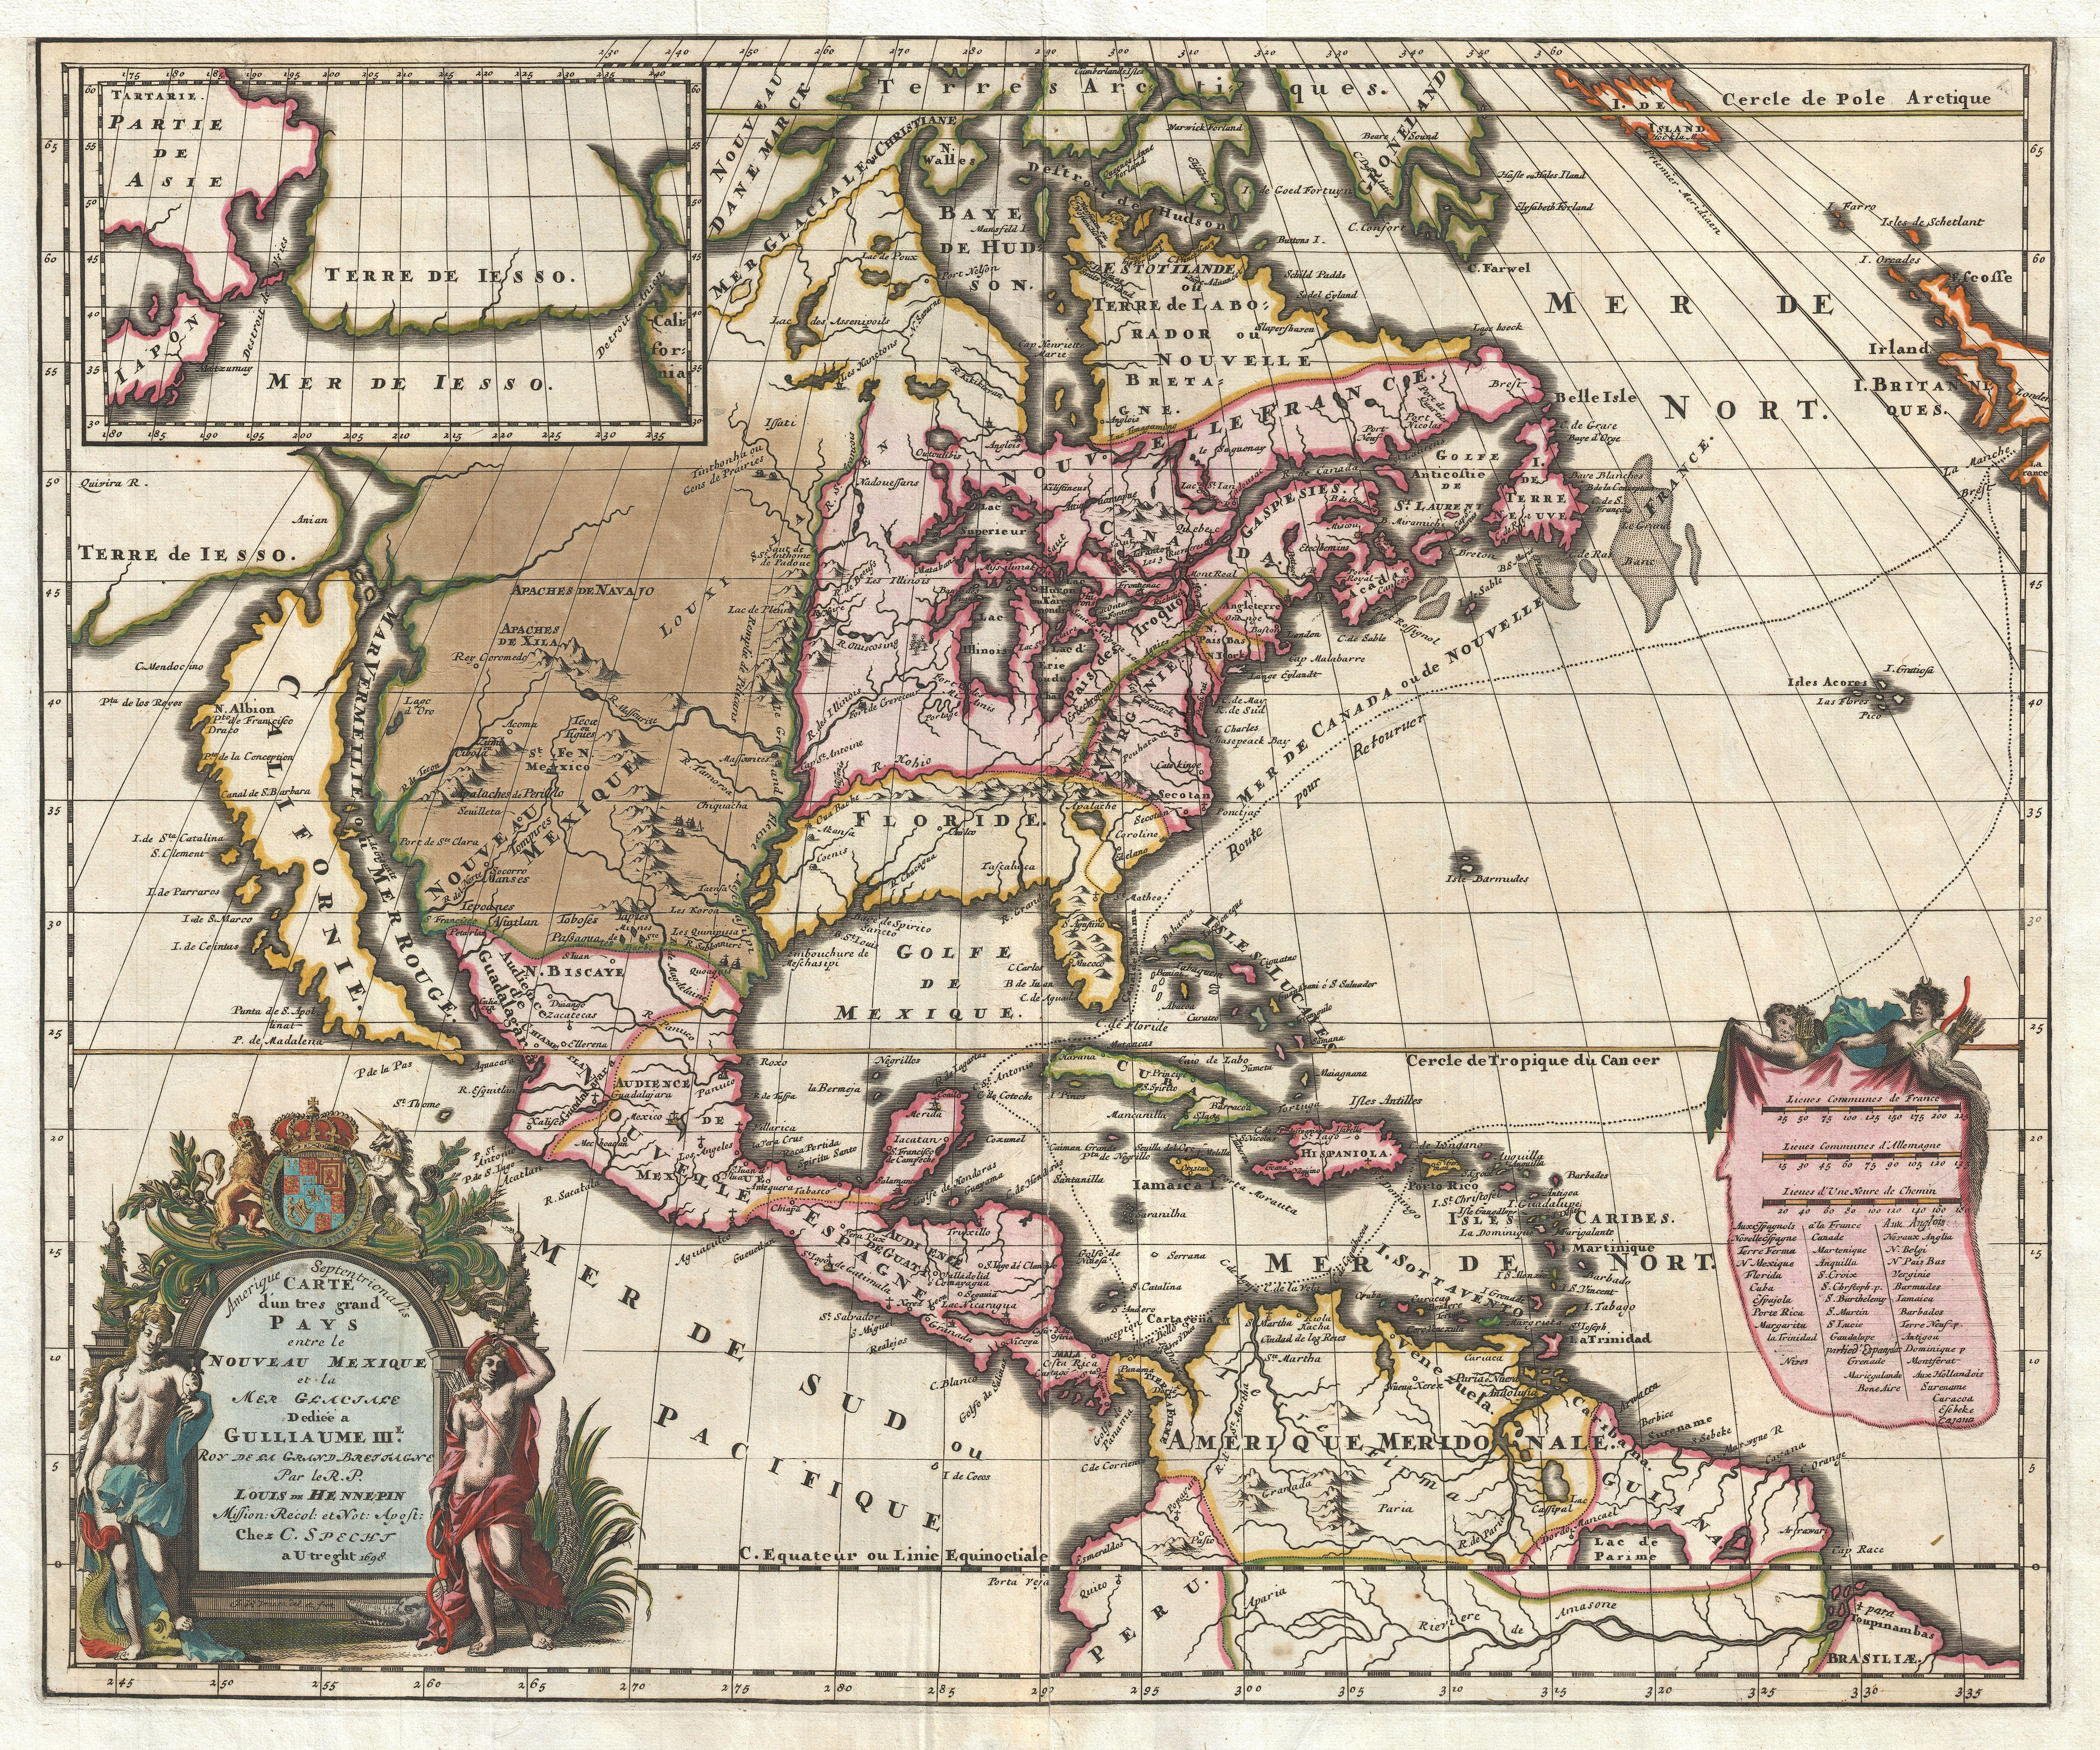 File:1698 Louis Hennepin Map of North America - Geographicus -  NorthAmerica-hennepin-1698.jpg